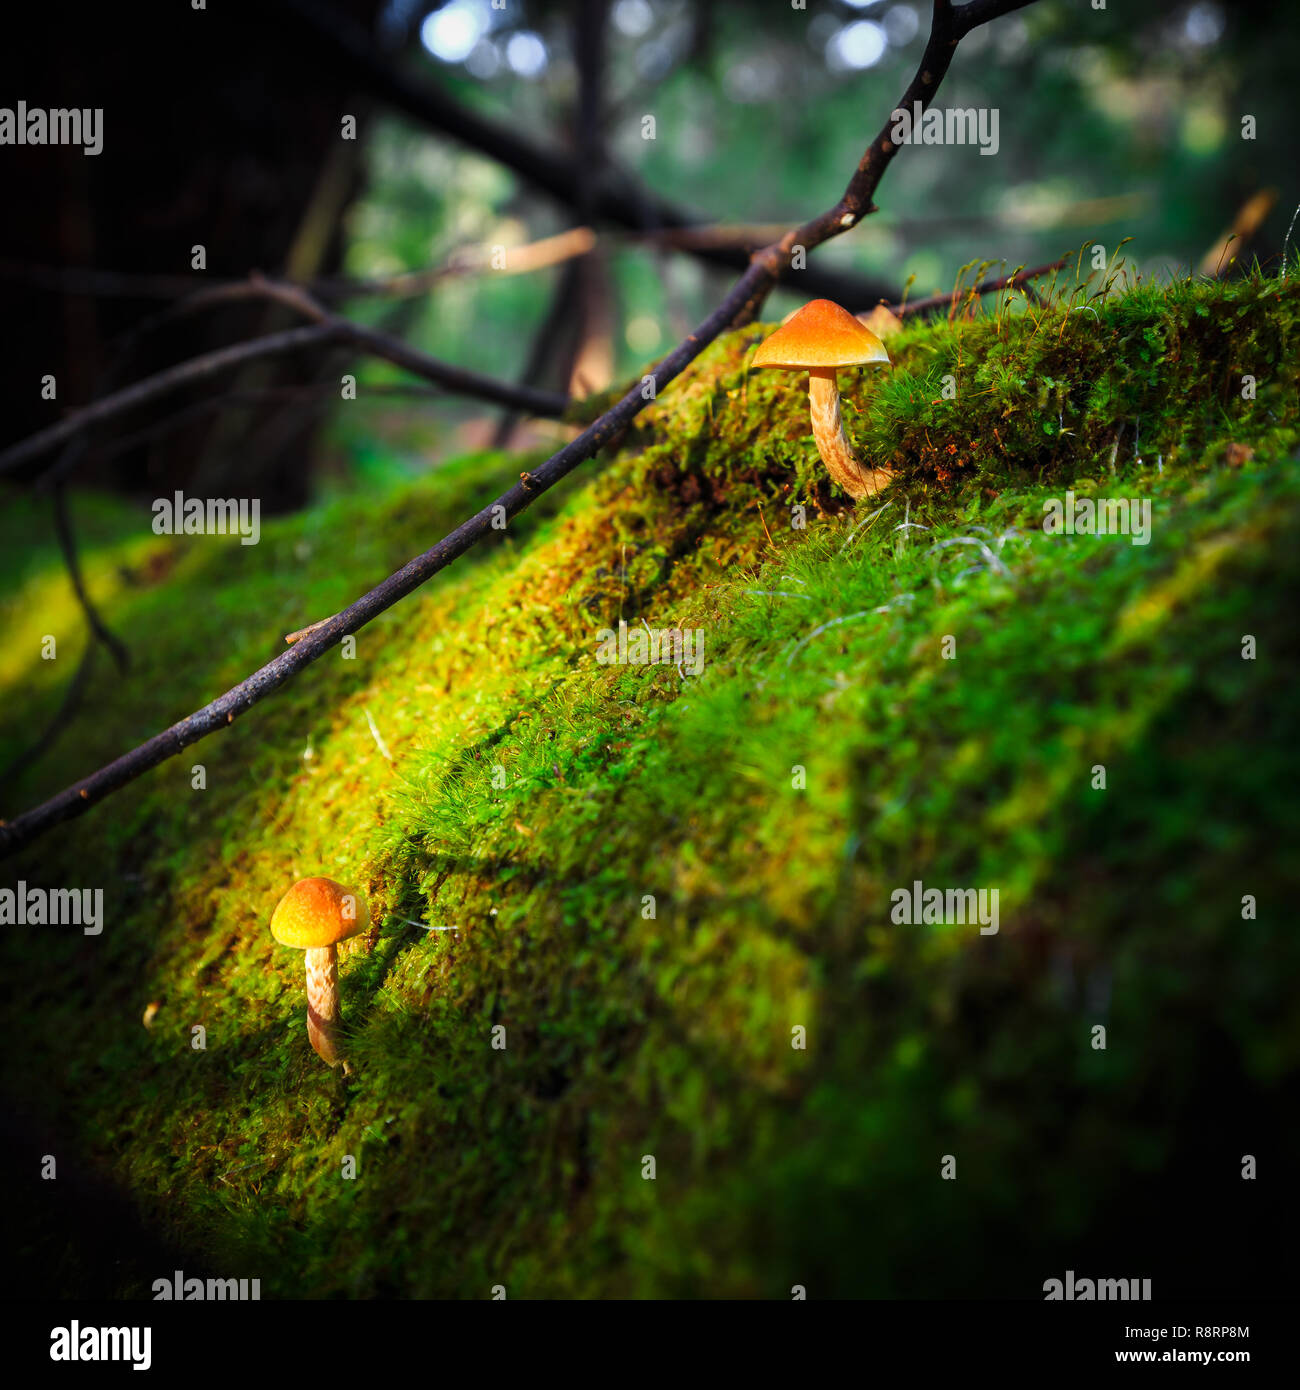 Champignons forestiers Photo Stock